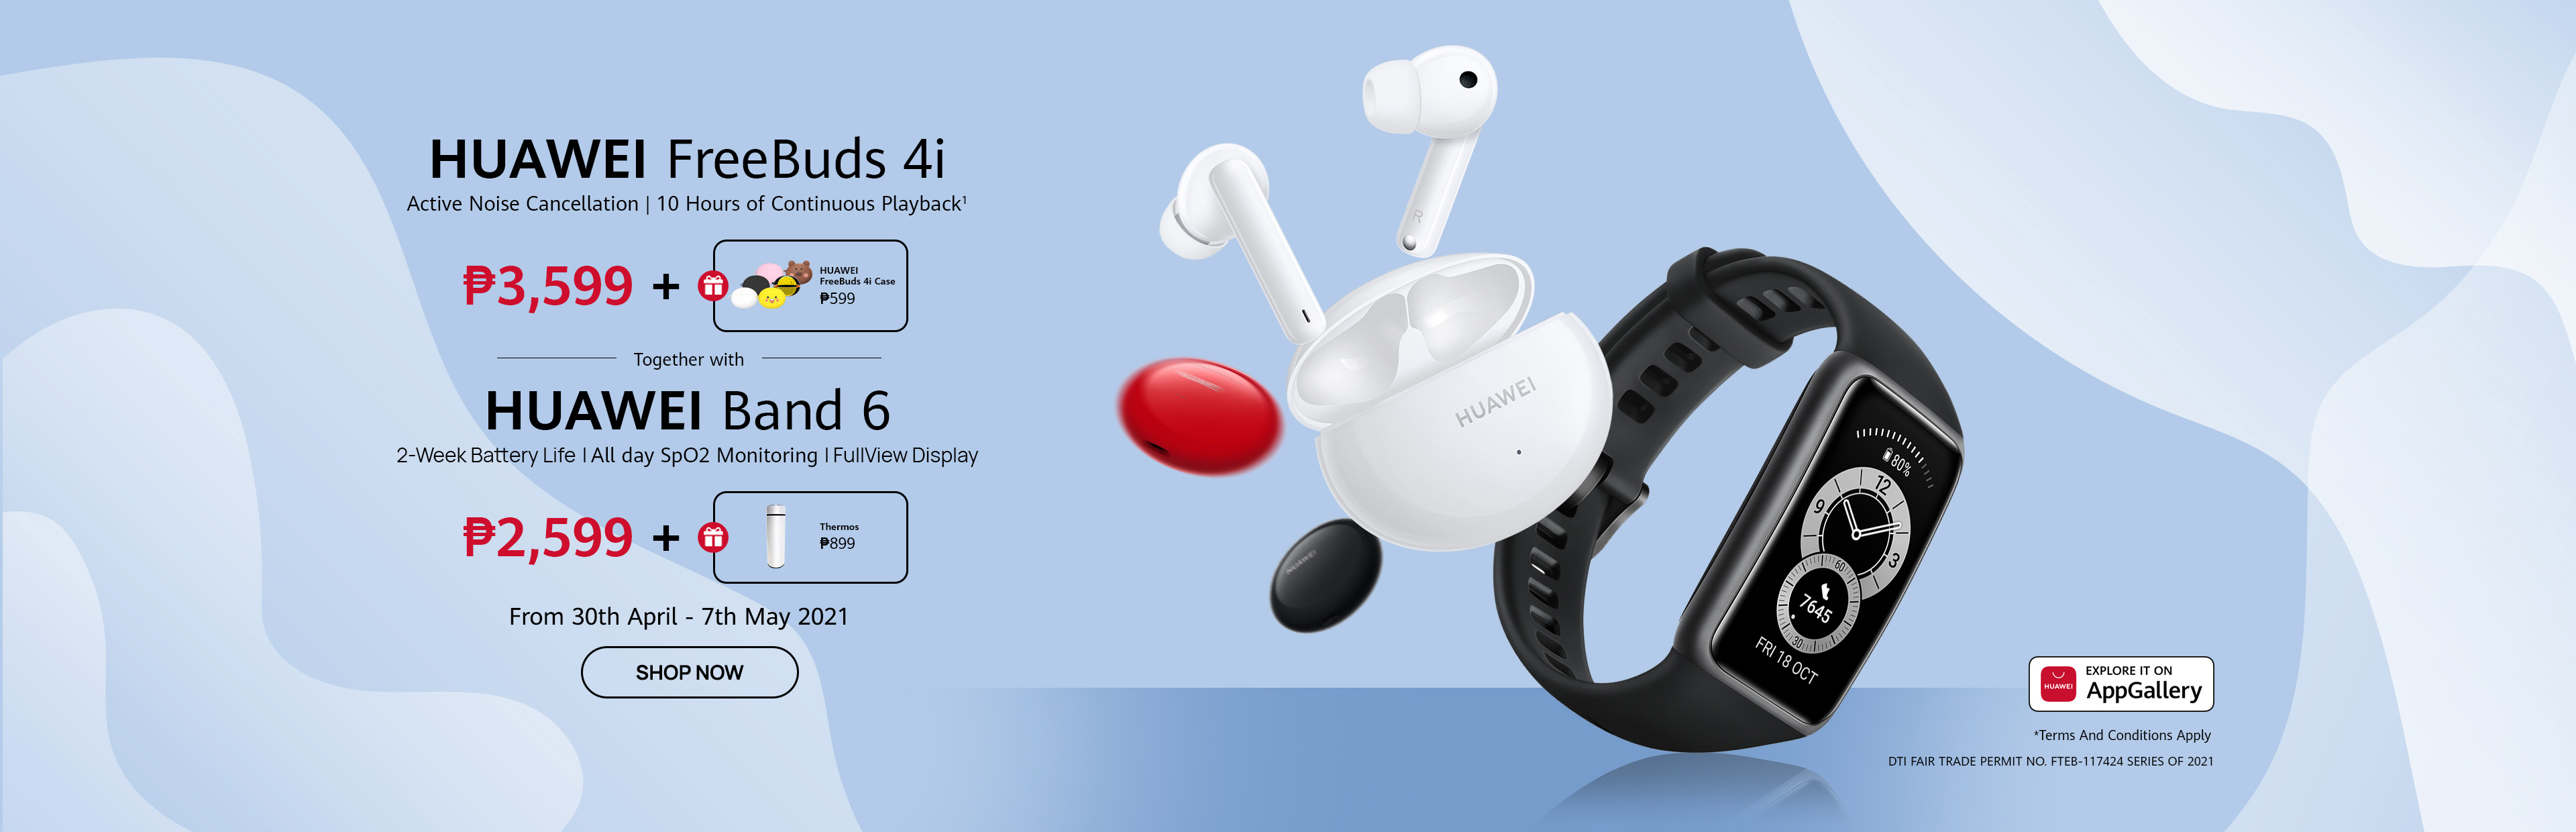 HUAWEI Freebuds 4i and HUAWEI Band 6